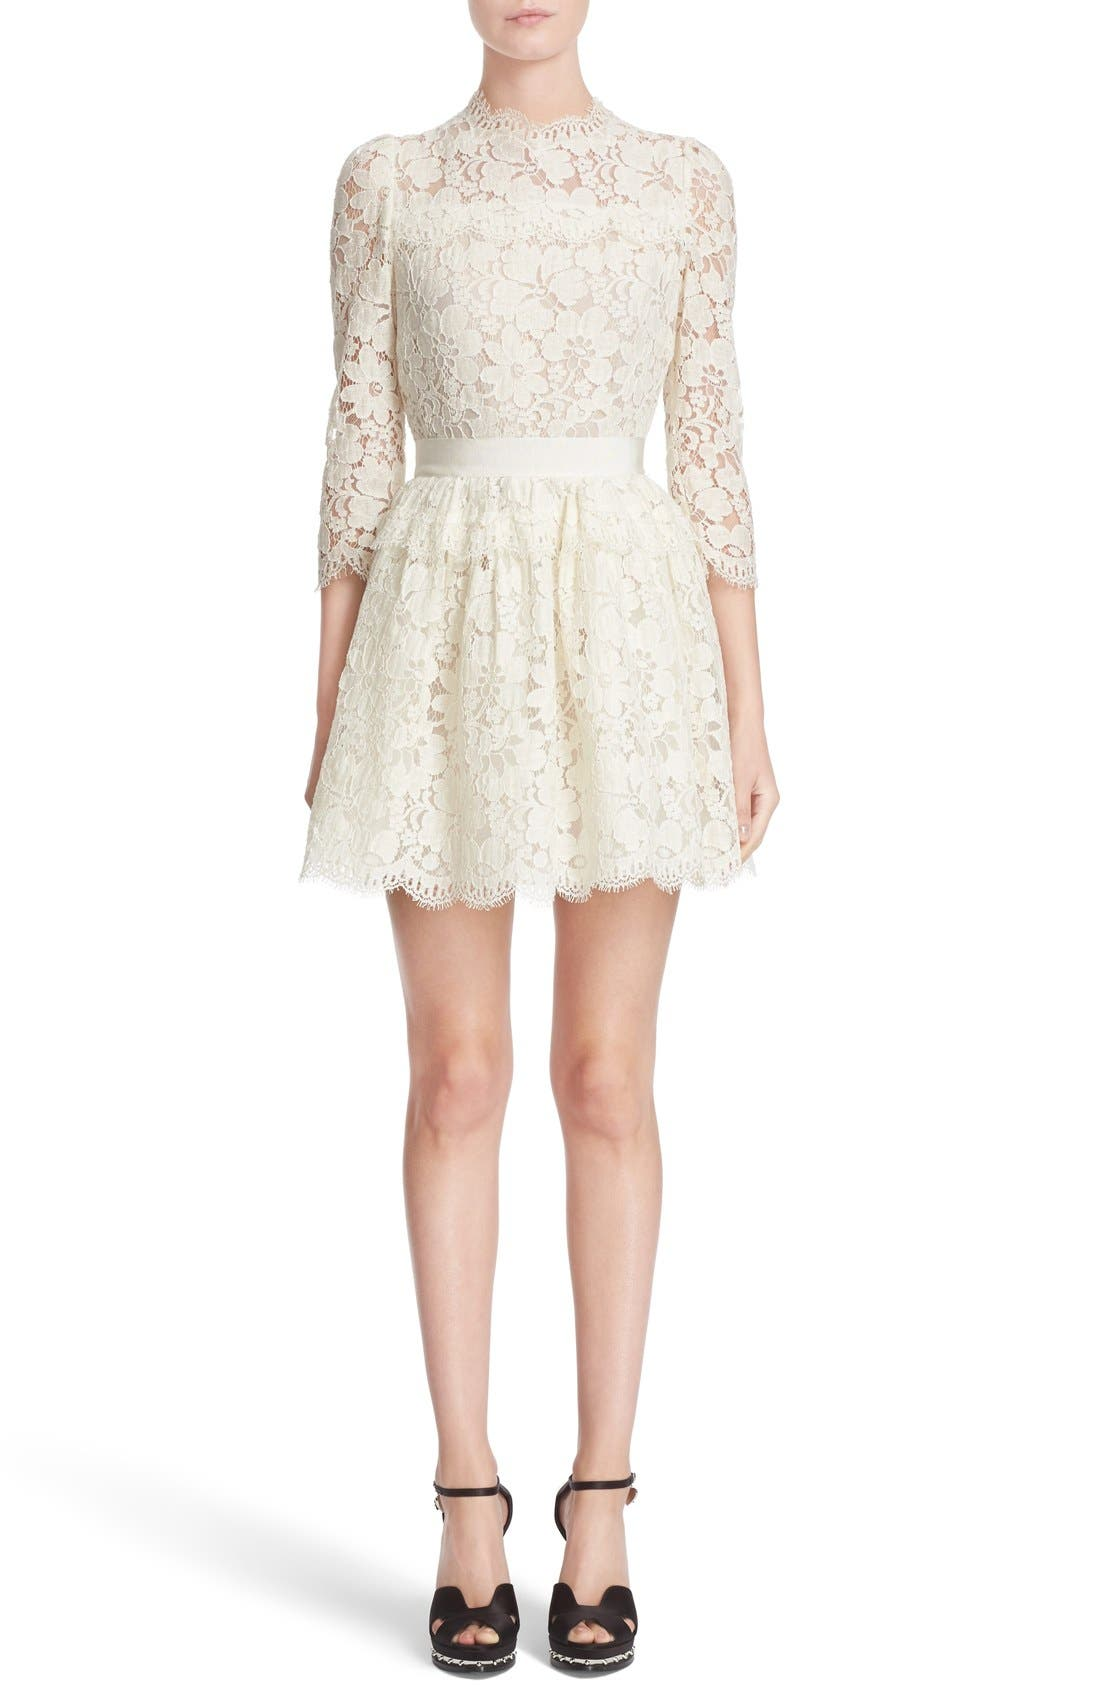 Alternate Image 1 Selected - Alexander McQueen Floral Lace Dress